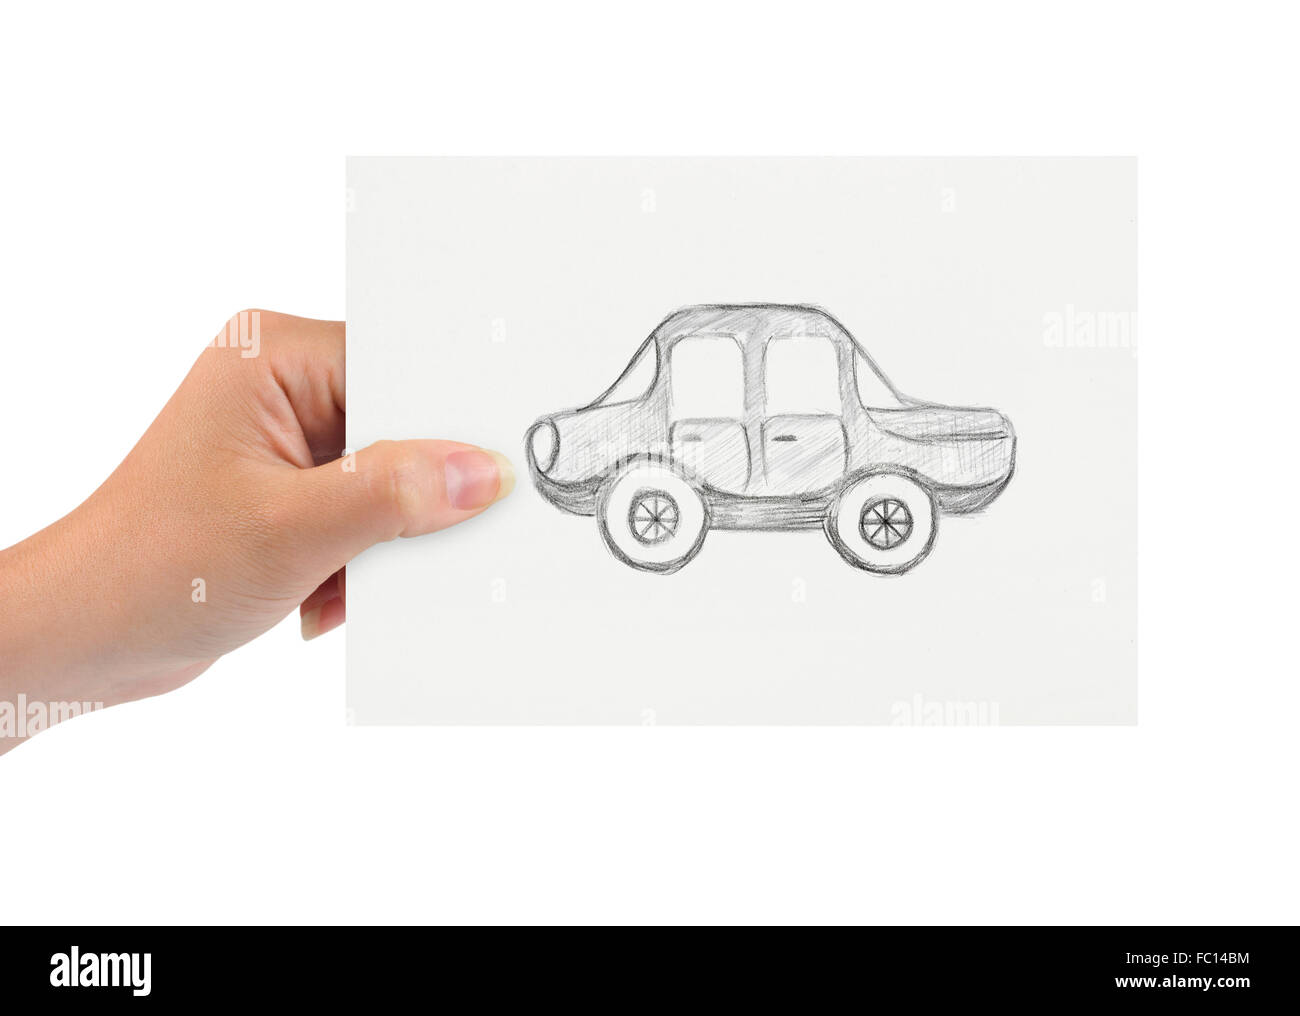 Hand with drawing car Stock Photo, Royalty Free Image: 93453128 ...